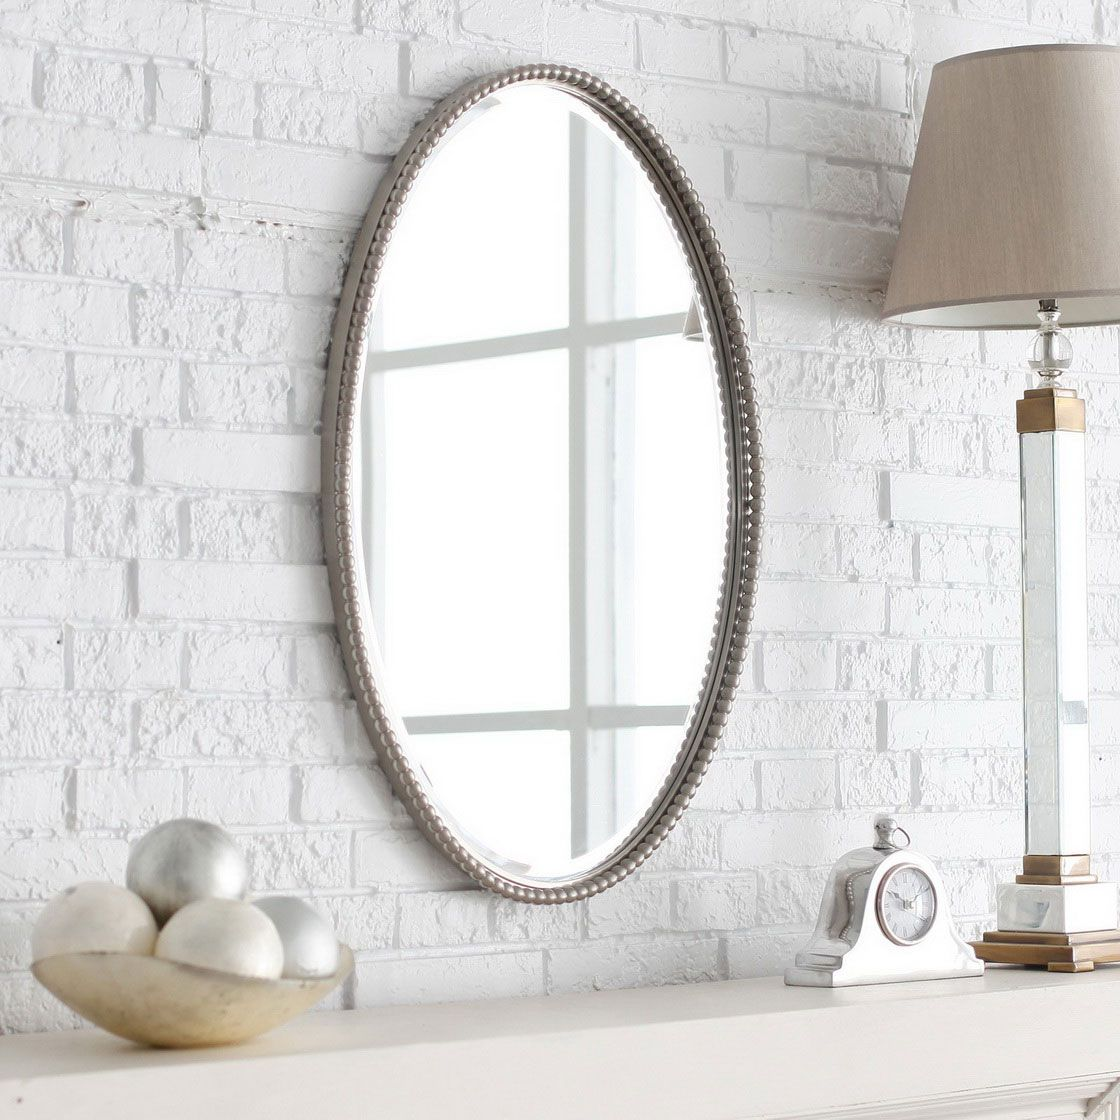 Bathroom oval mirrors - add beauty and elegance to your bathroom ...